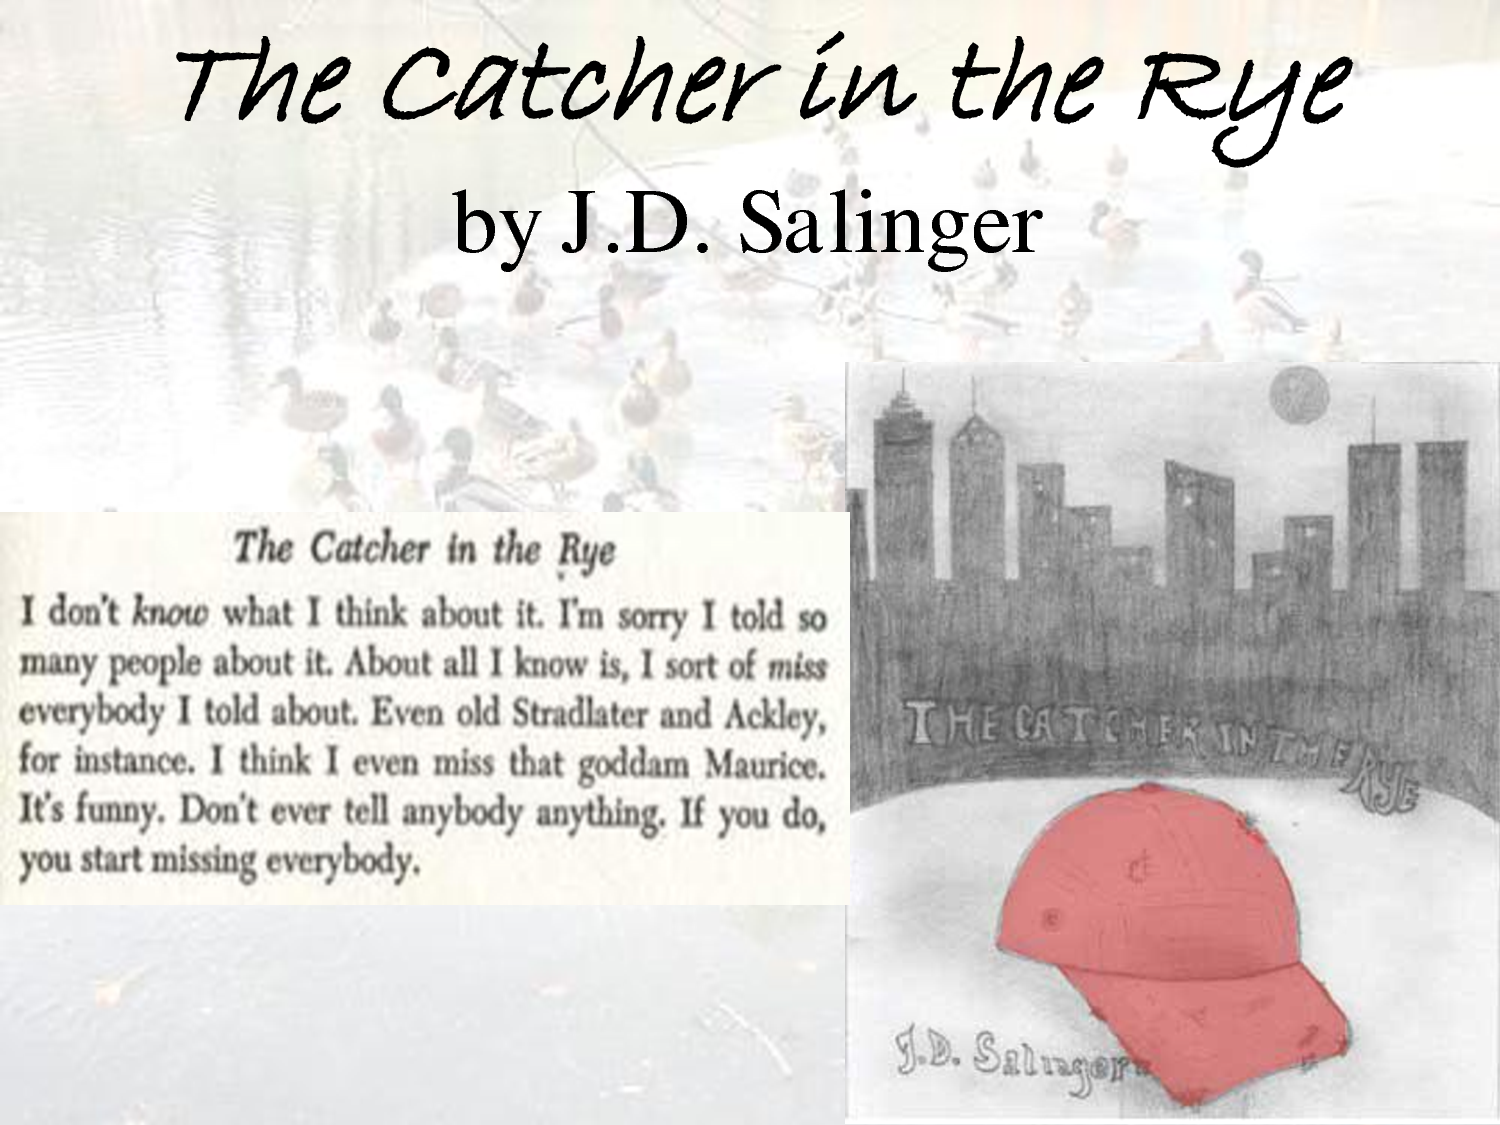 the ducks in the catcher in the rye